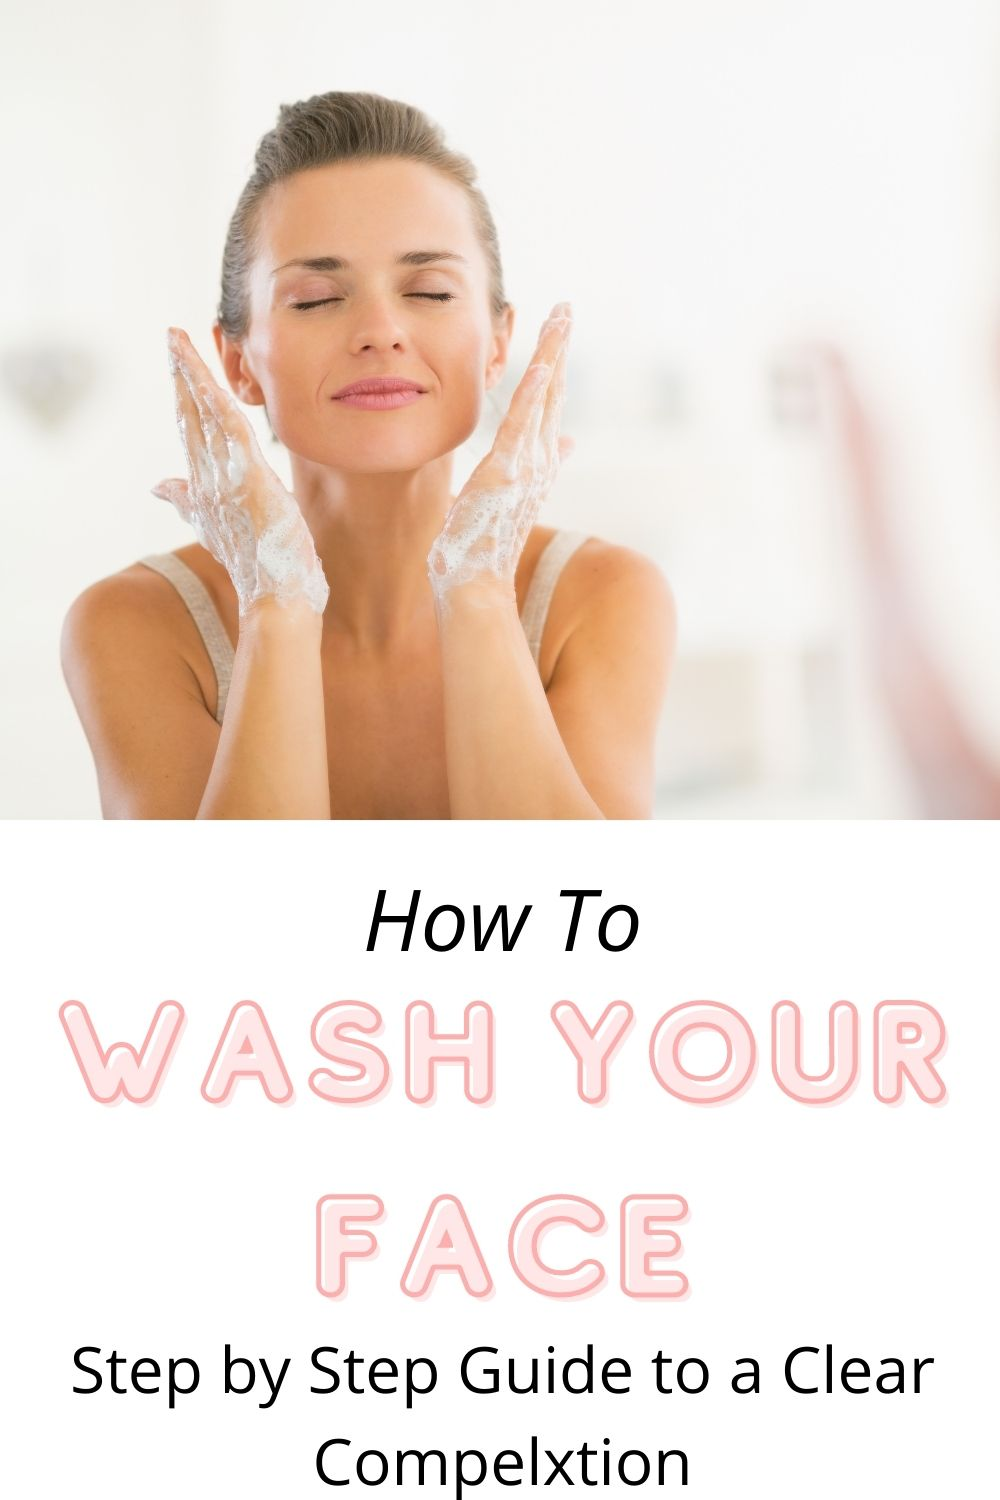 How To Wash Your Face _ Guide to a Clear Complexion